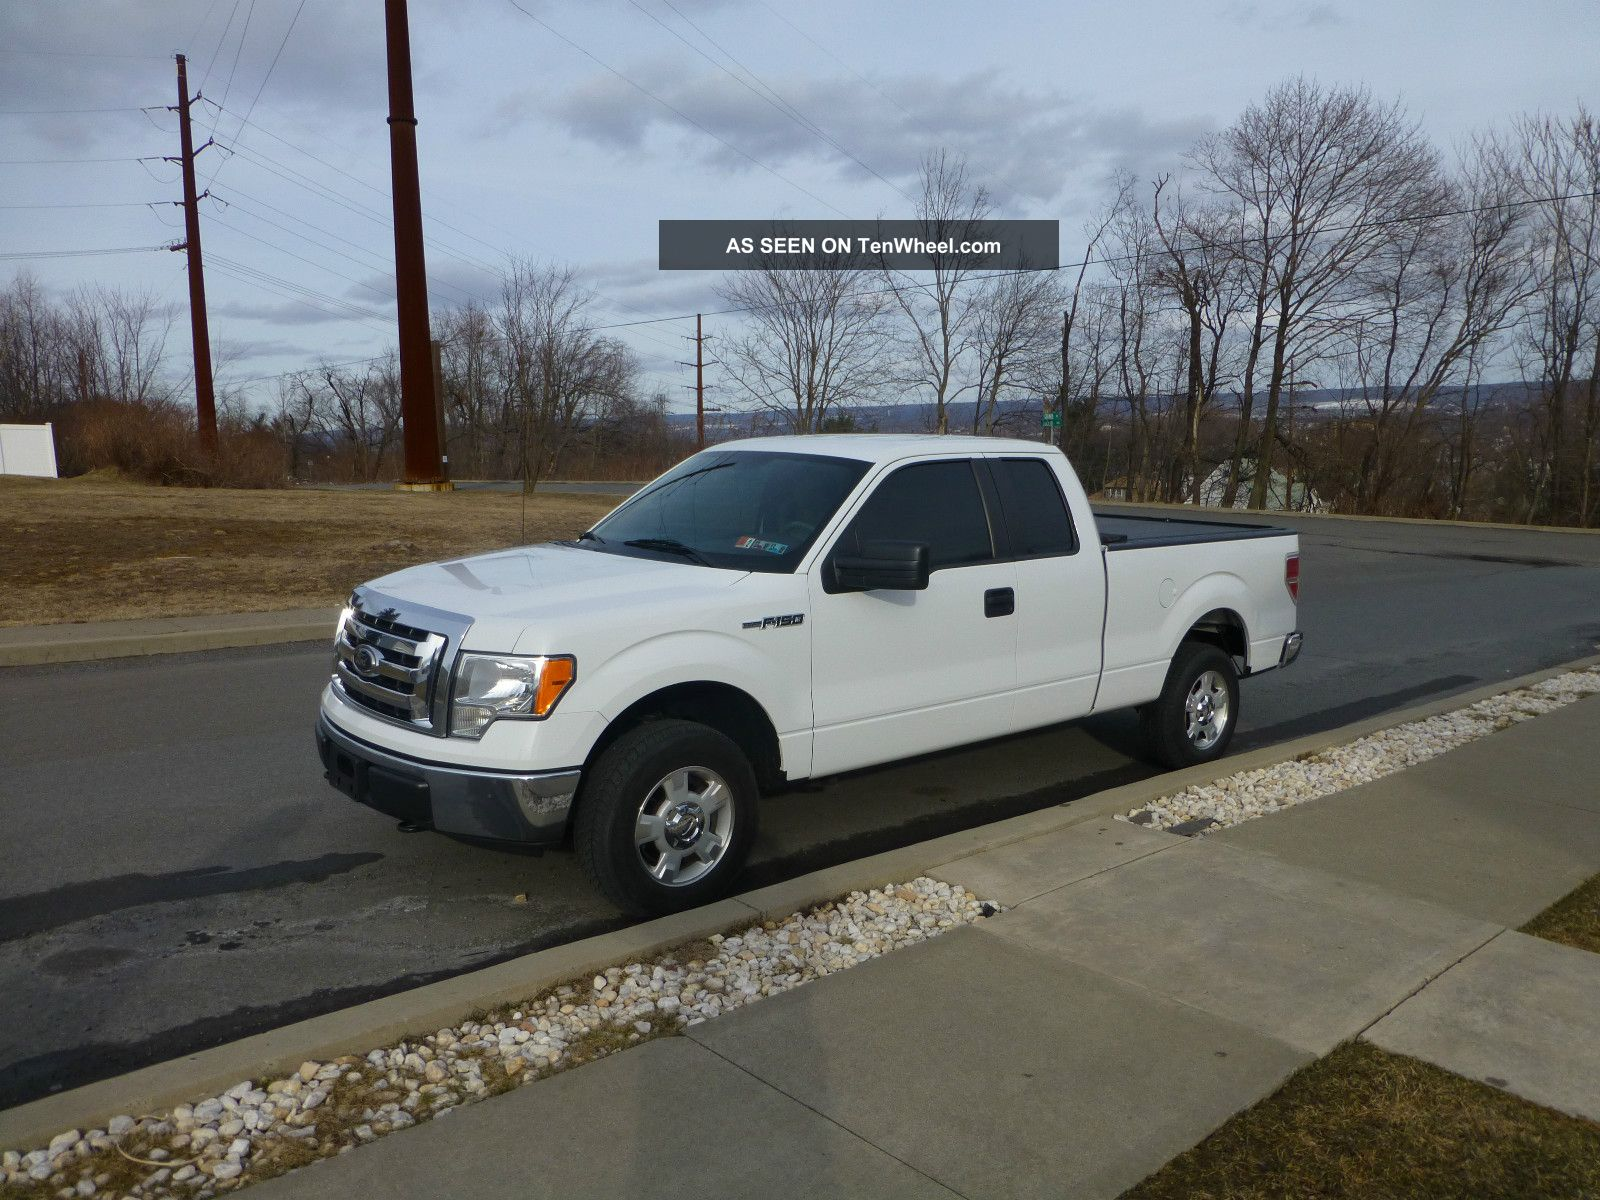 Ford f 150 extended cab trucks submited images pic2fly